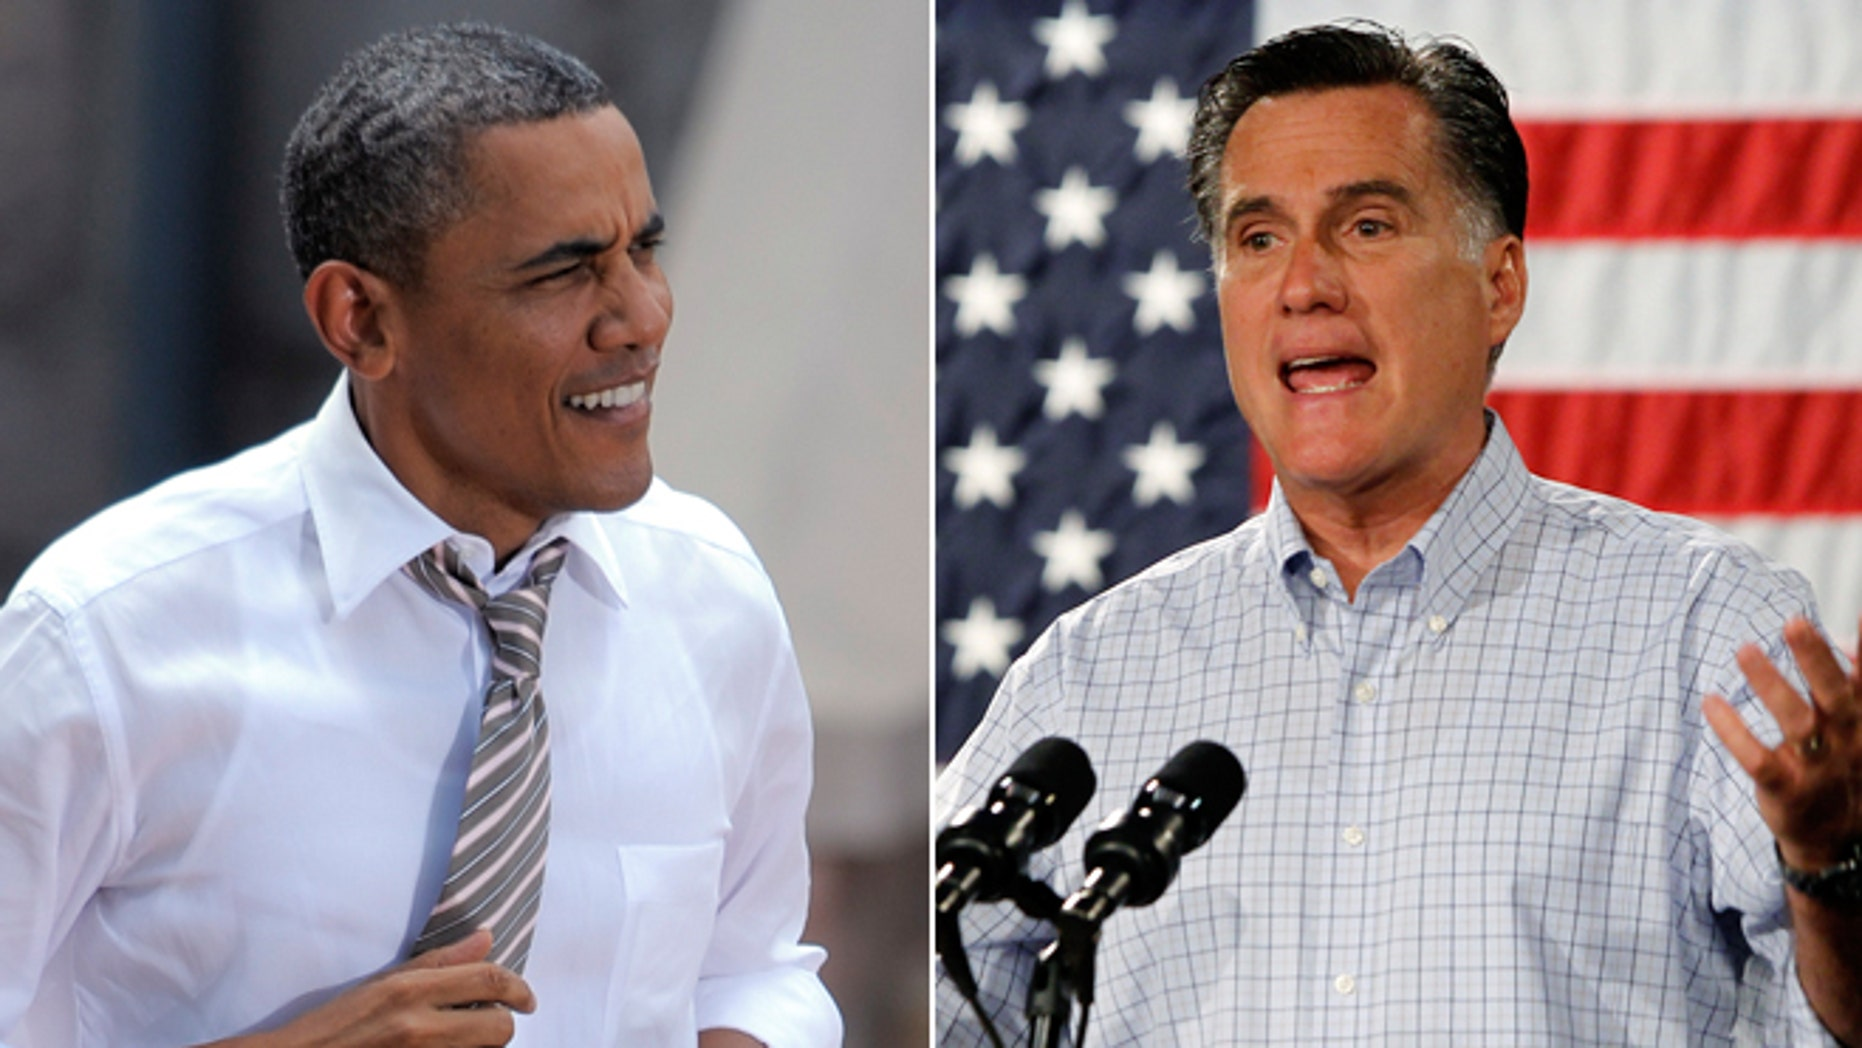 President Obama leads Mitt Romney by 9 percentage points in the latest Fox News poll.